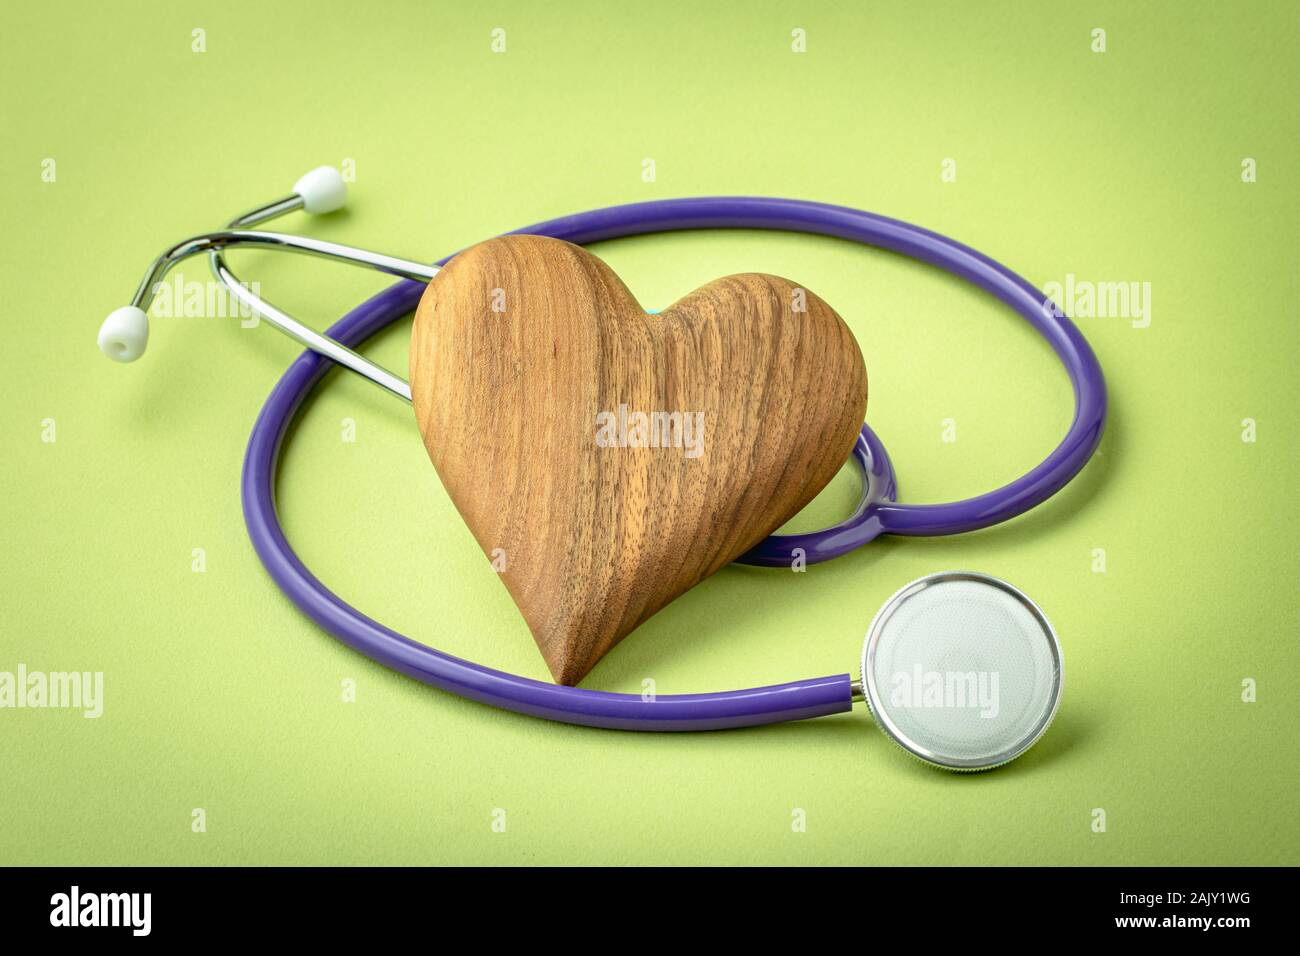 Wooden heart with stethoscope on green background Stock Photo